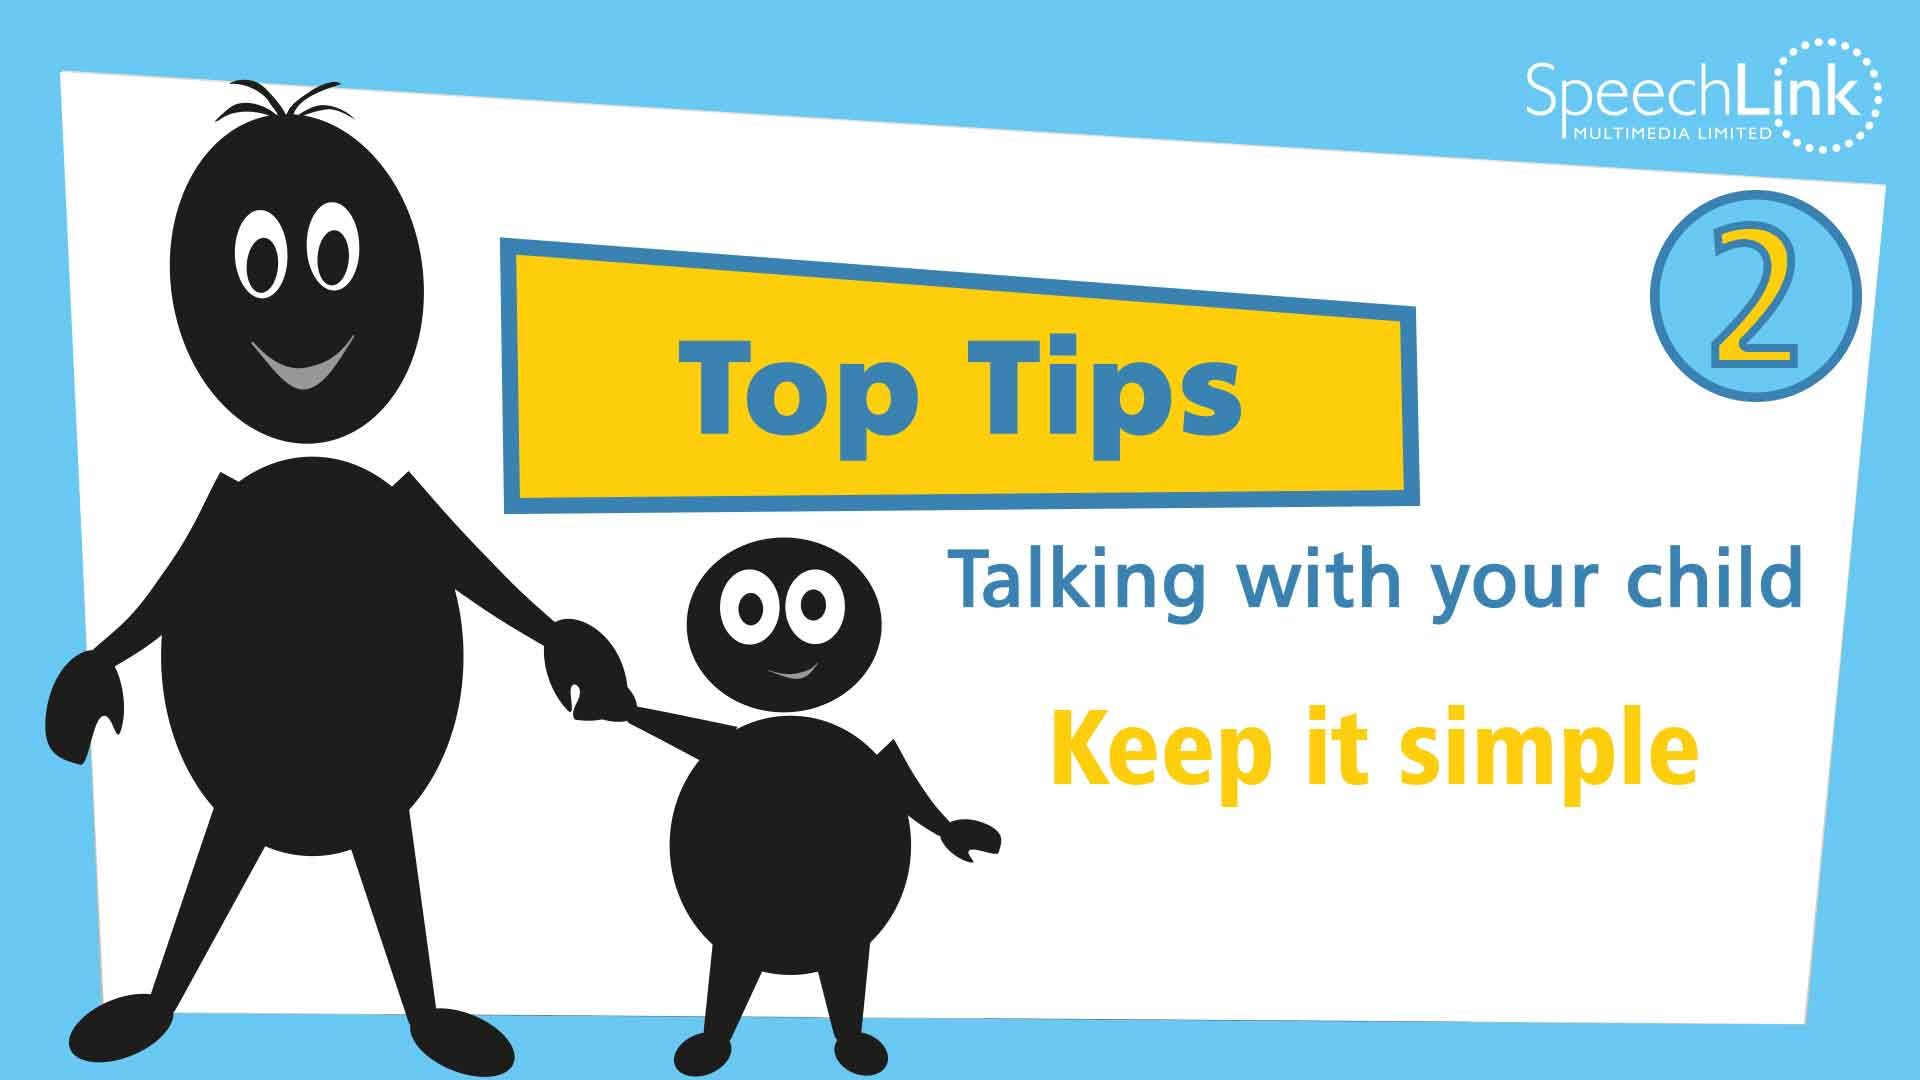 Top Tips 2 - Keep it simple